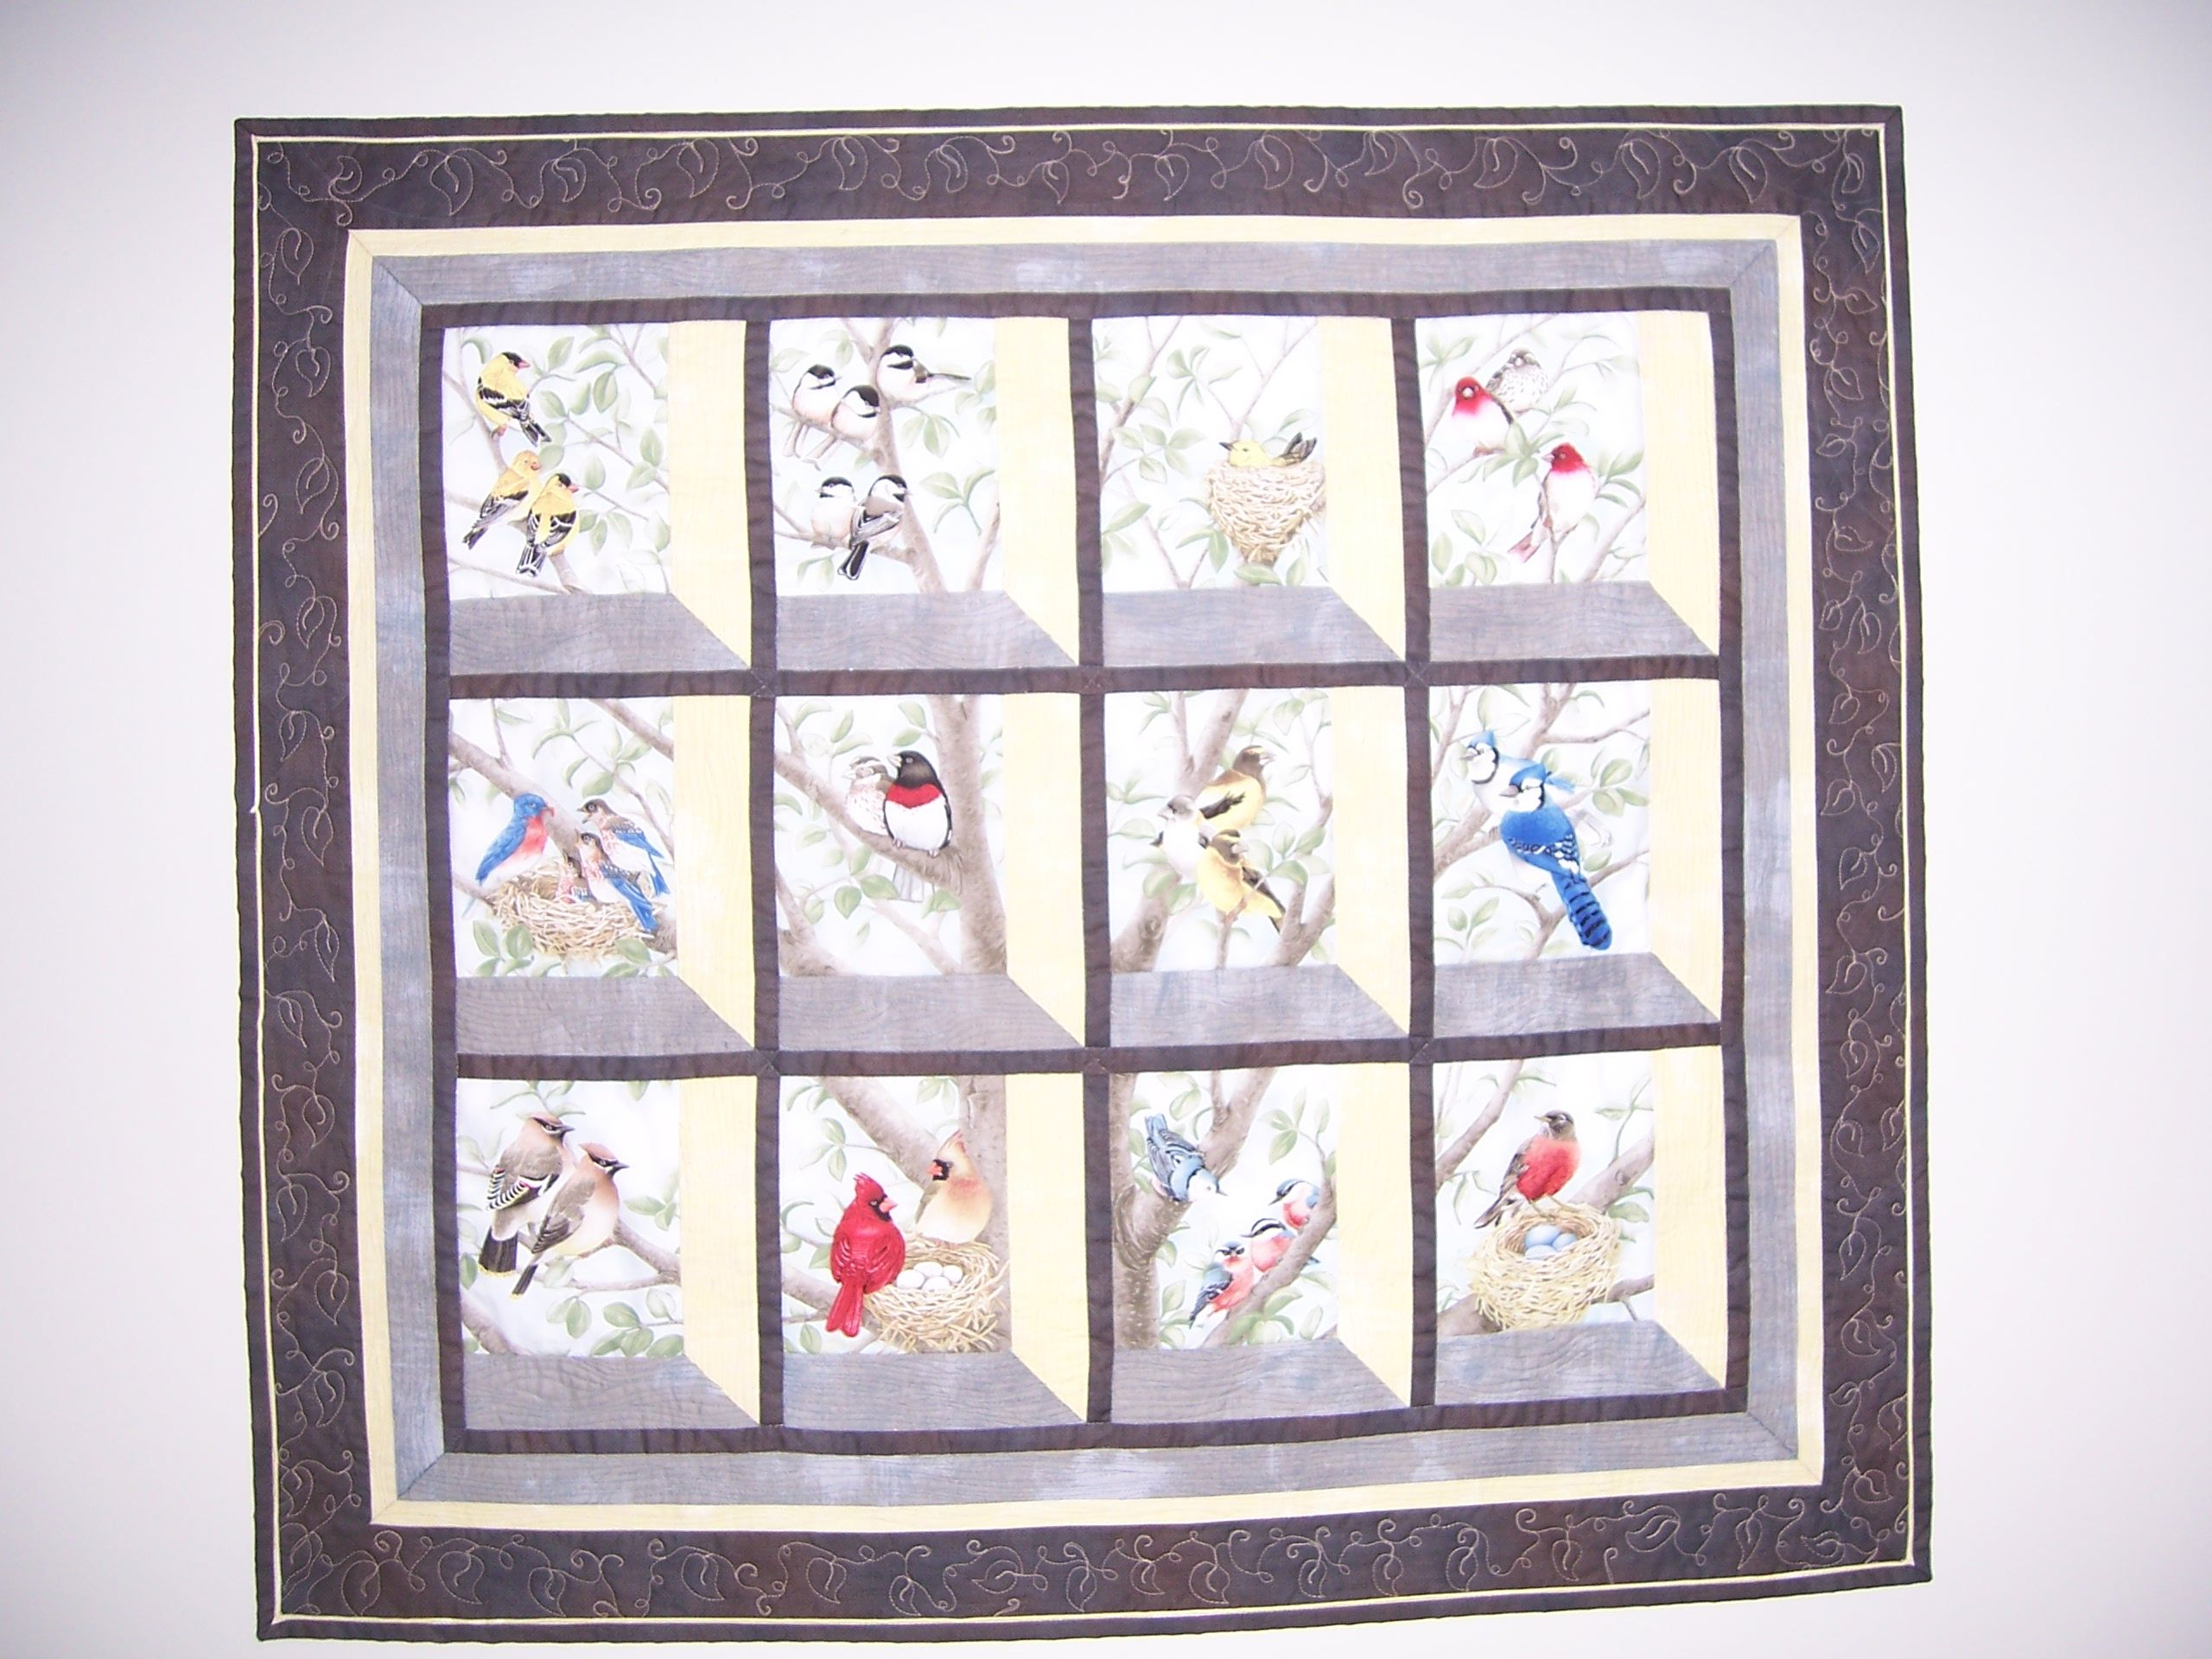 Attic windows wall hanging from Beautiful Birds in Window panel from